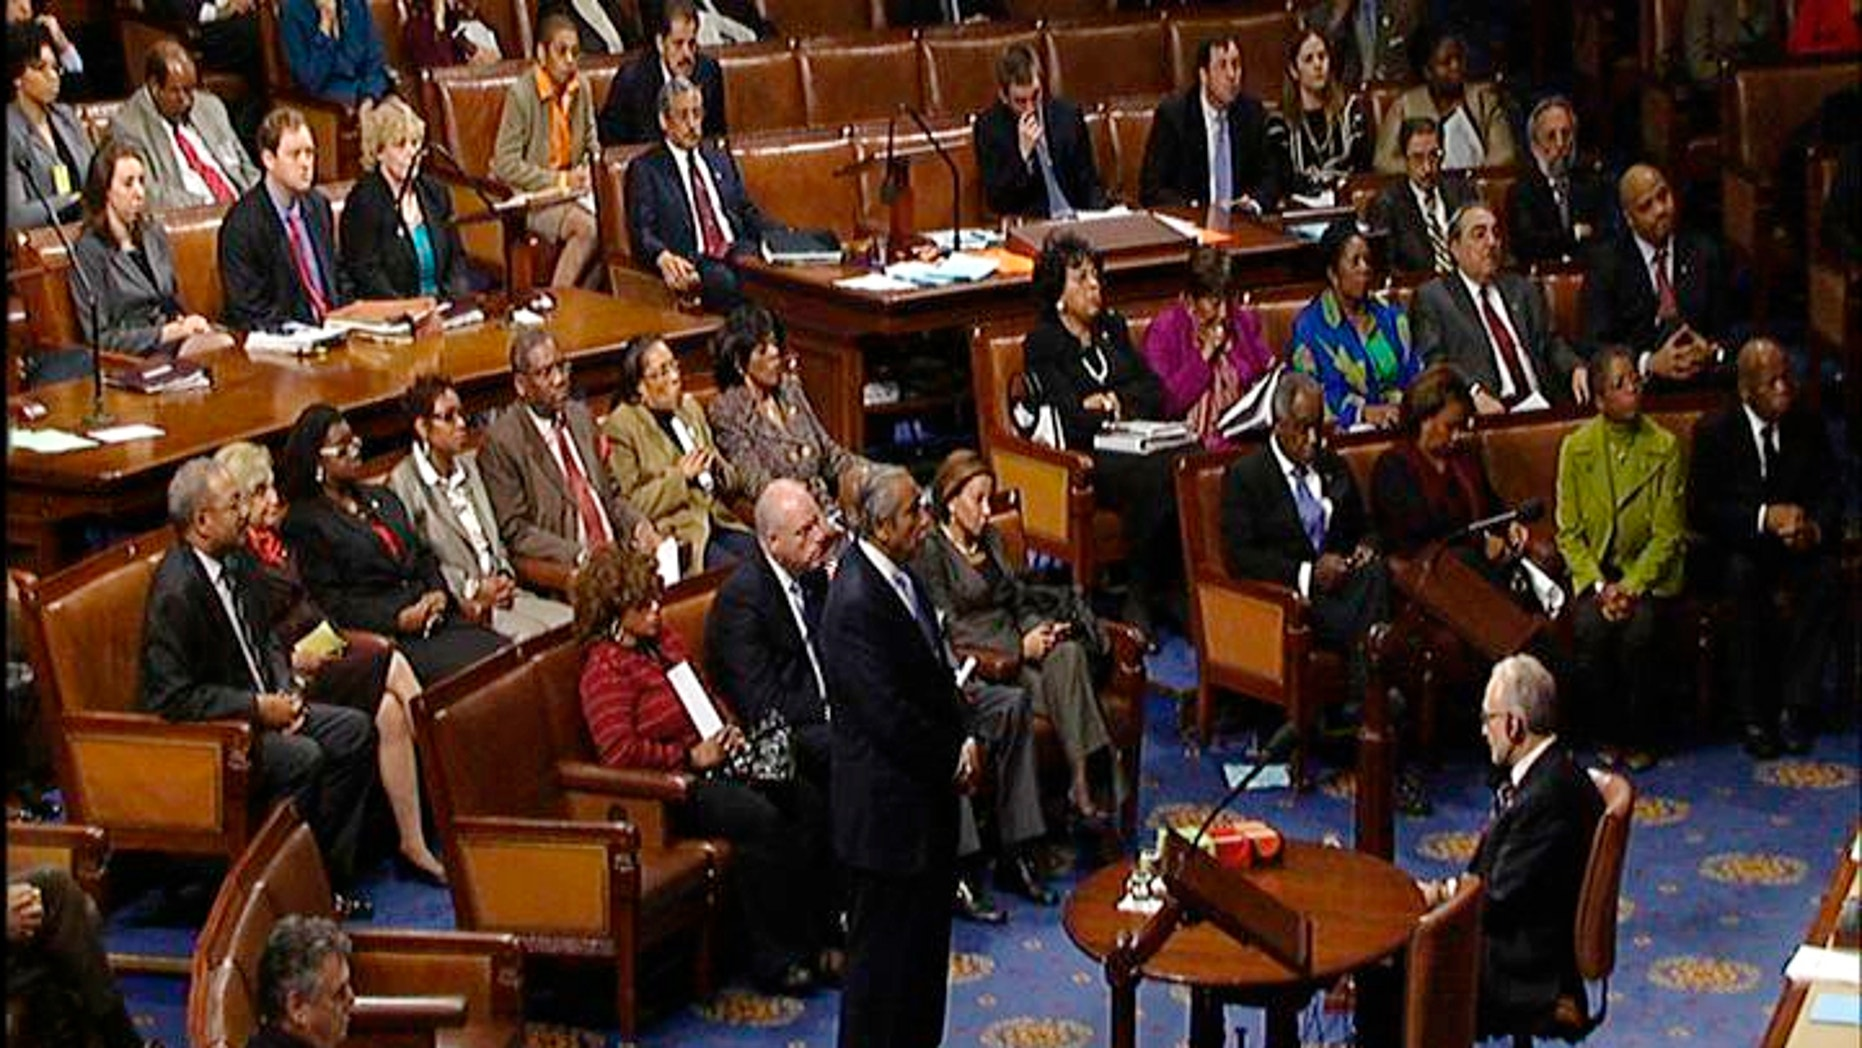 This video frame grab image provided by House Television shows Rep. Charles Rangel, D-N.Y., stands in the well on the House floor while House Speaker Nancy Pelosi reads the censure resolution passed by the House on Capitol Hill in Washington, Thursday, Dec. 2, 2010.  (AP Photo/House Television)